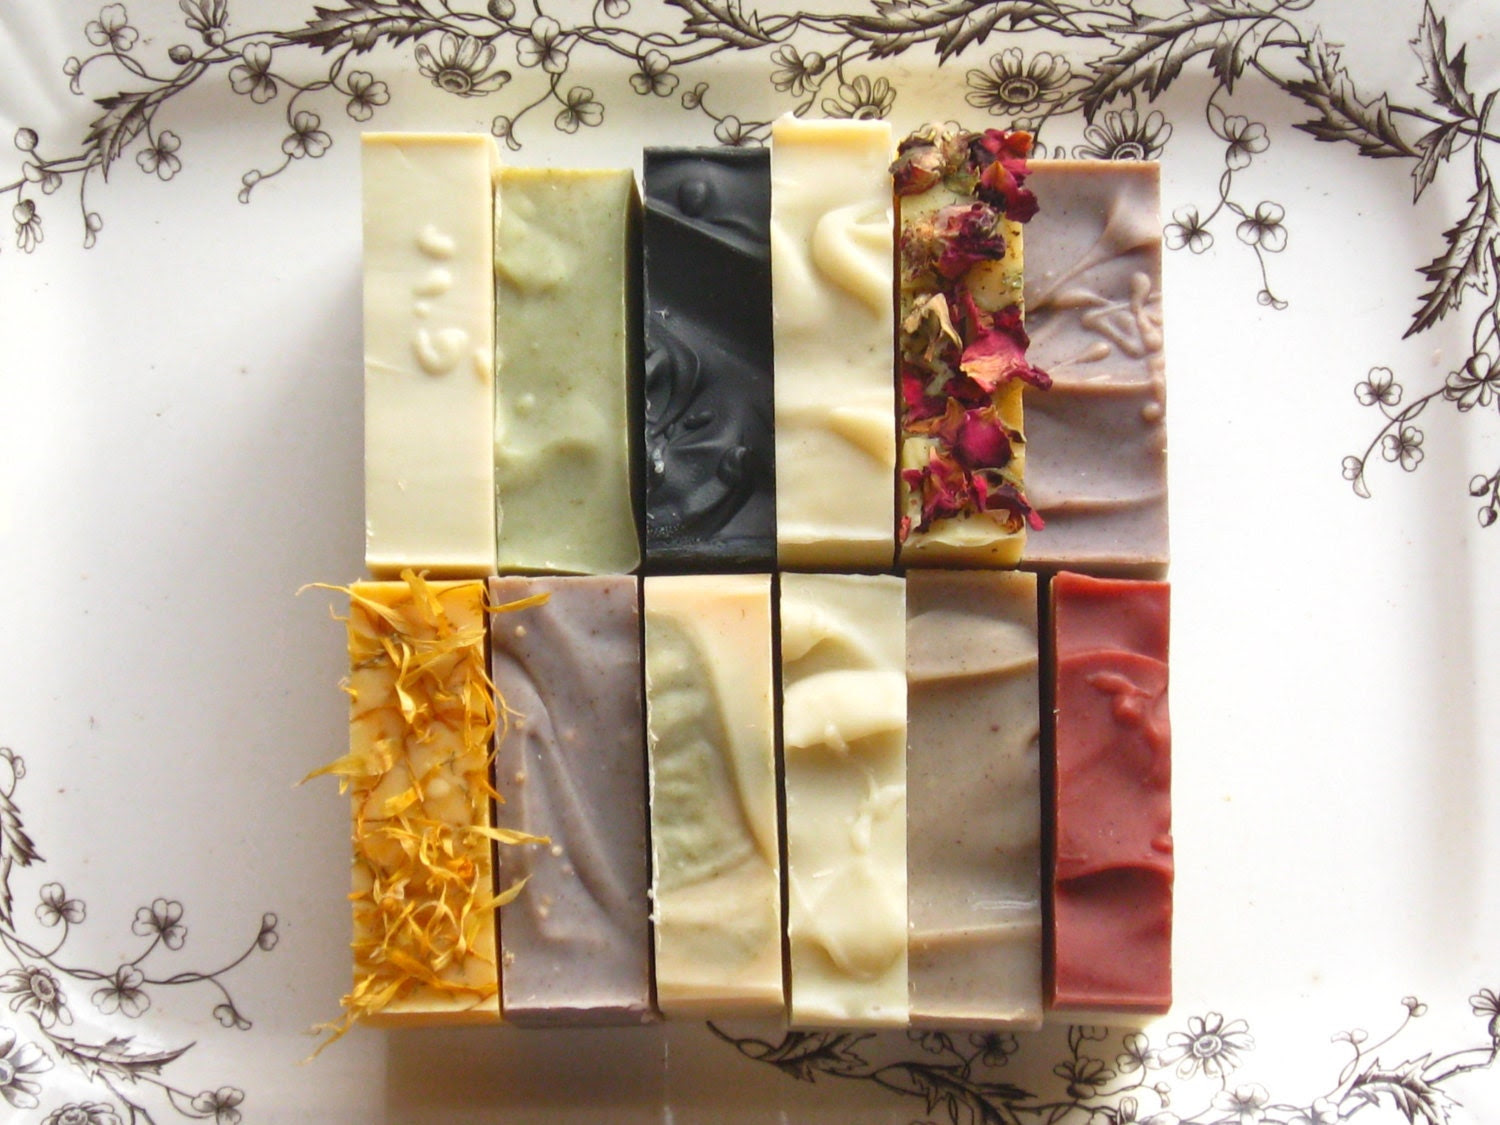 Swamp Angel Soap Club // Soap of the Month Soap Lip Balm Gift Set Seasonal Soap Sampler Cold Process Colorful Rustic Gift under 100